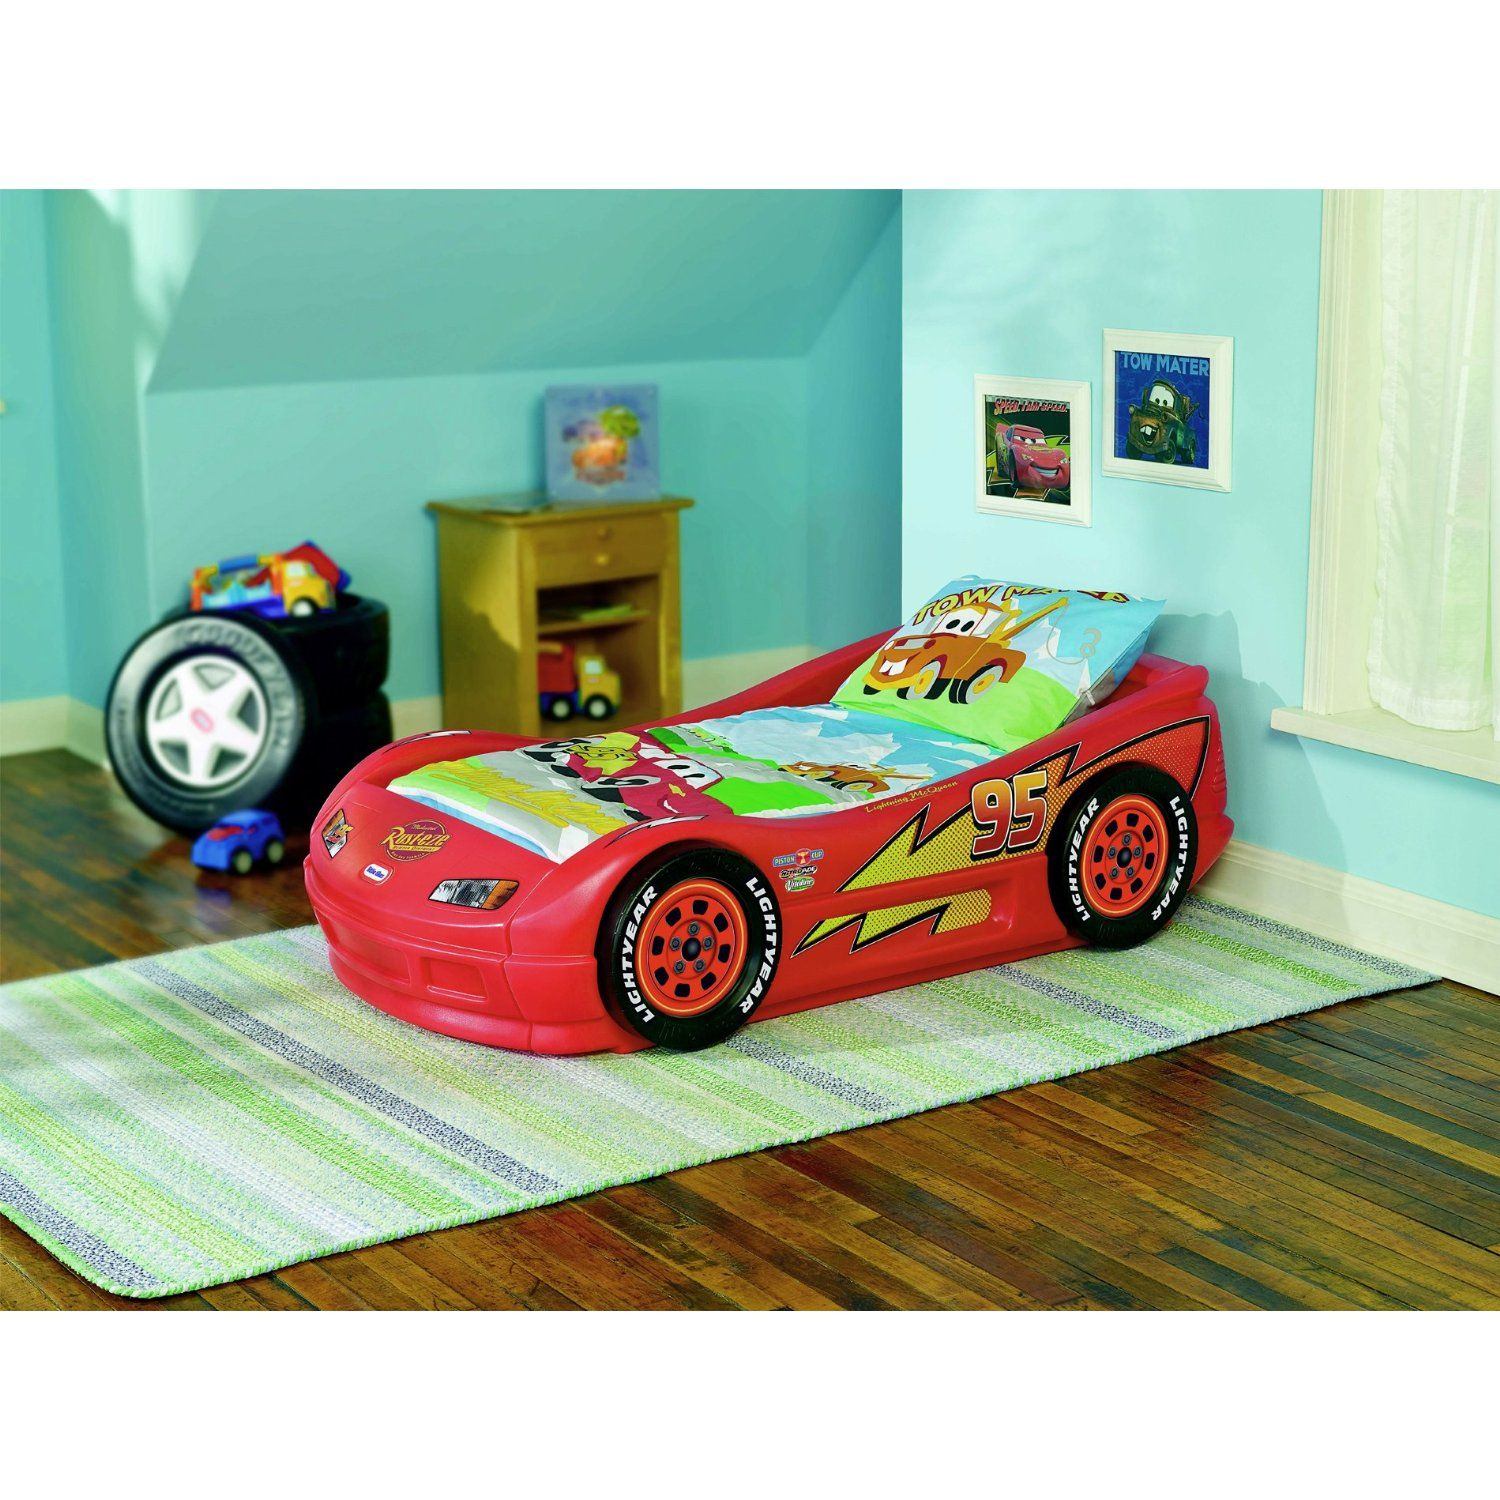 Disney Cars Bedroom Ideas Home Decor And More Pinterest Disney Cars Bed